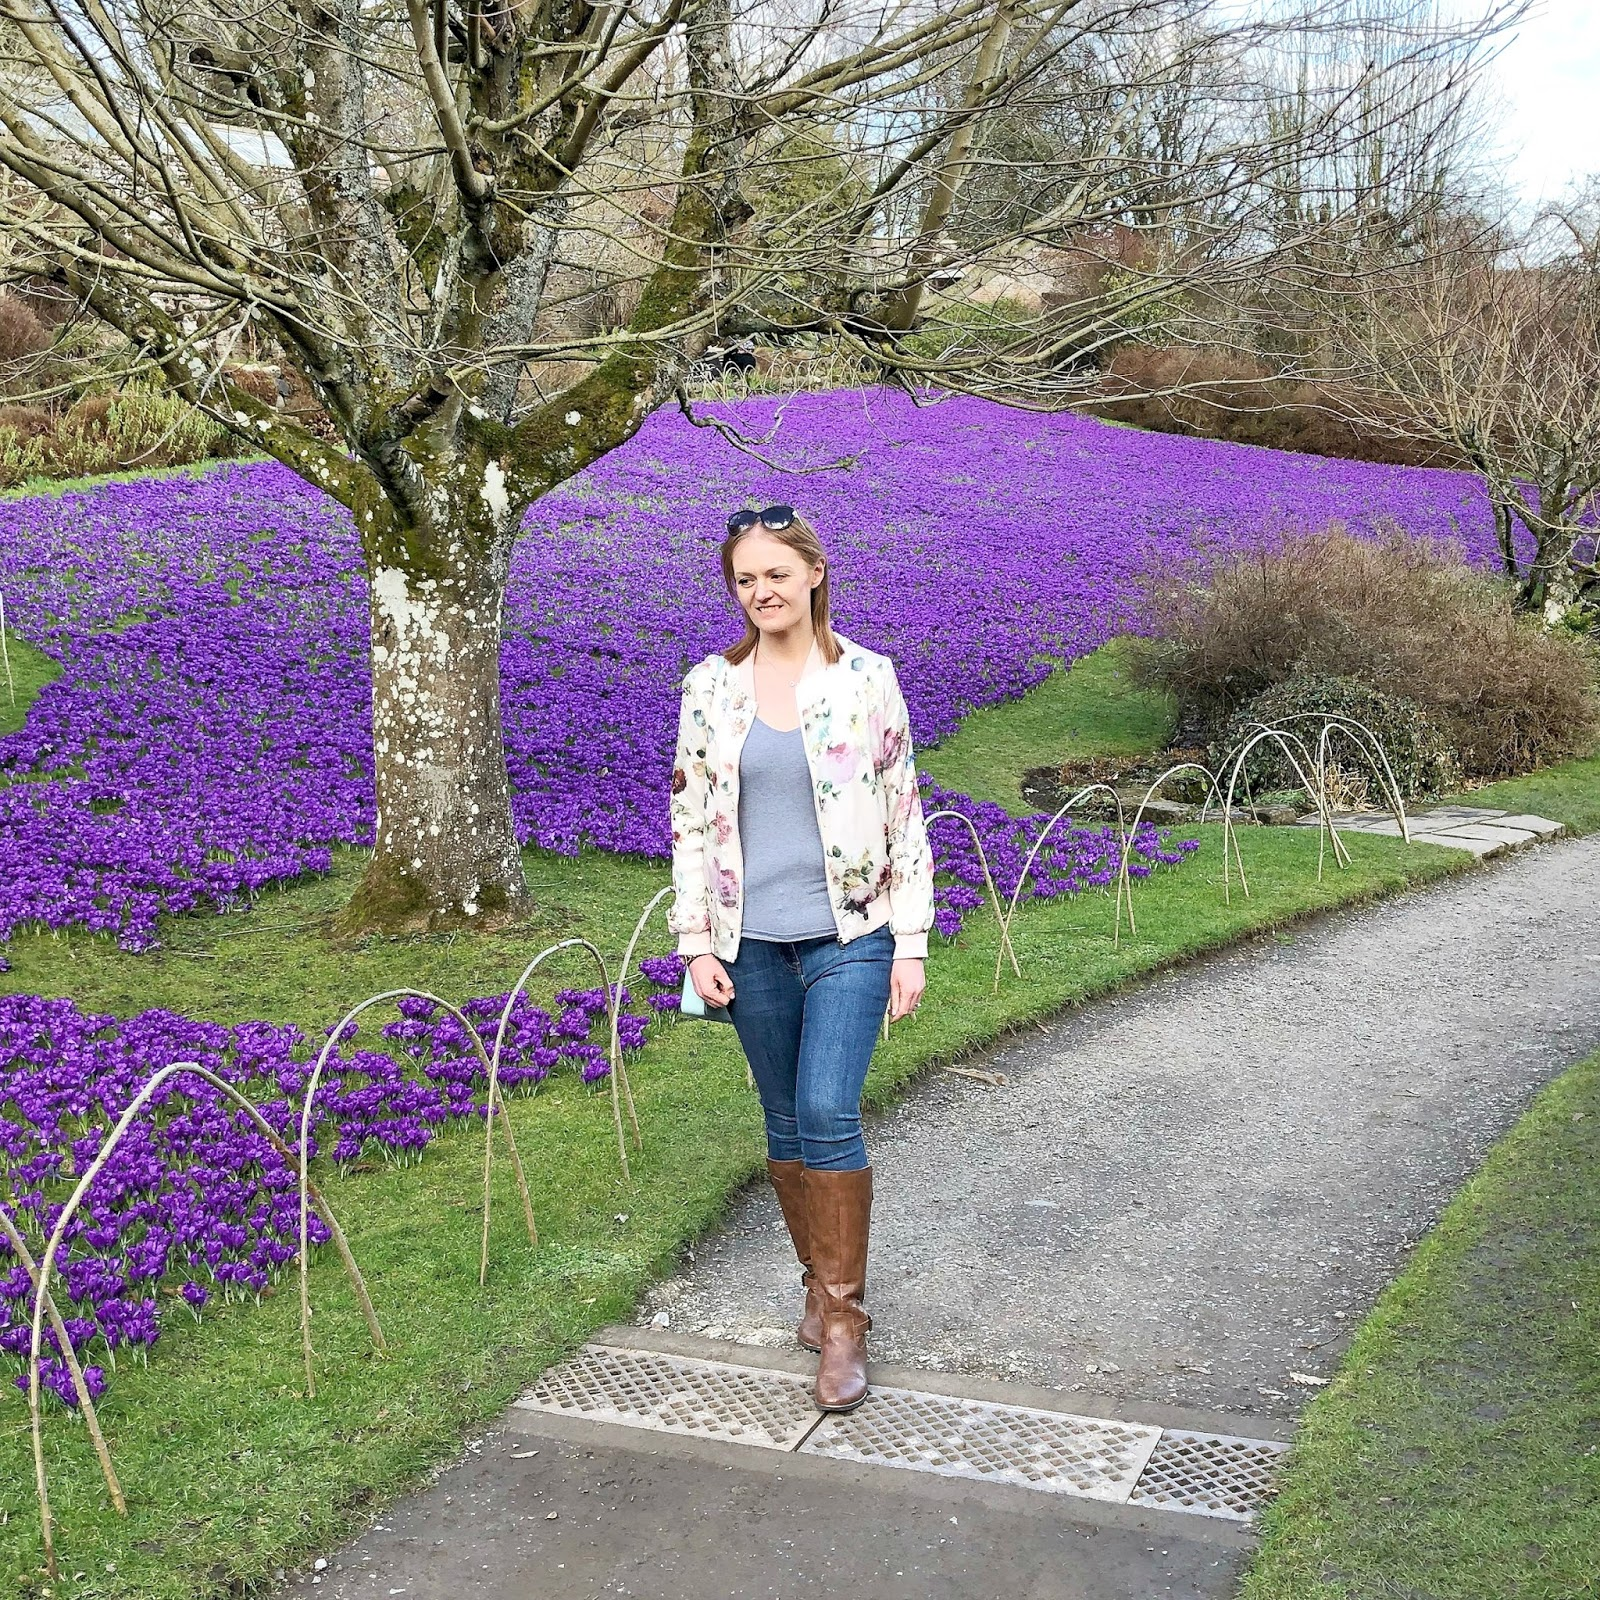 New Girl in Toon - Wallington Crocus Lawn